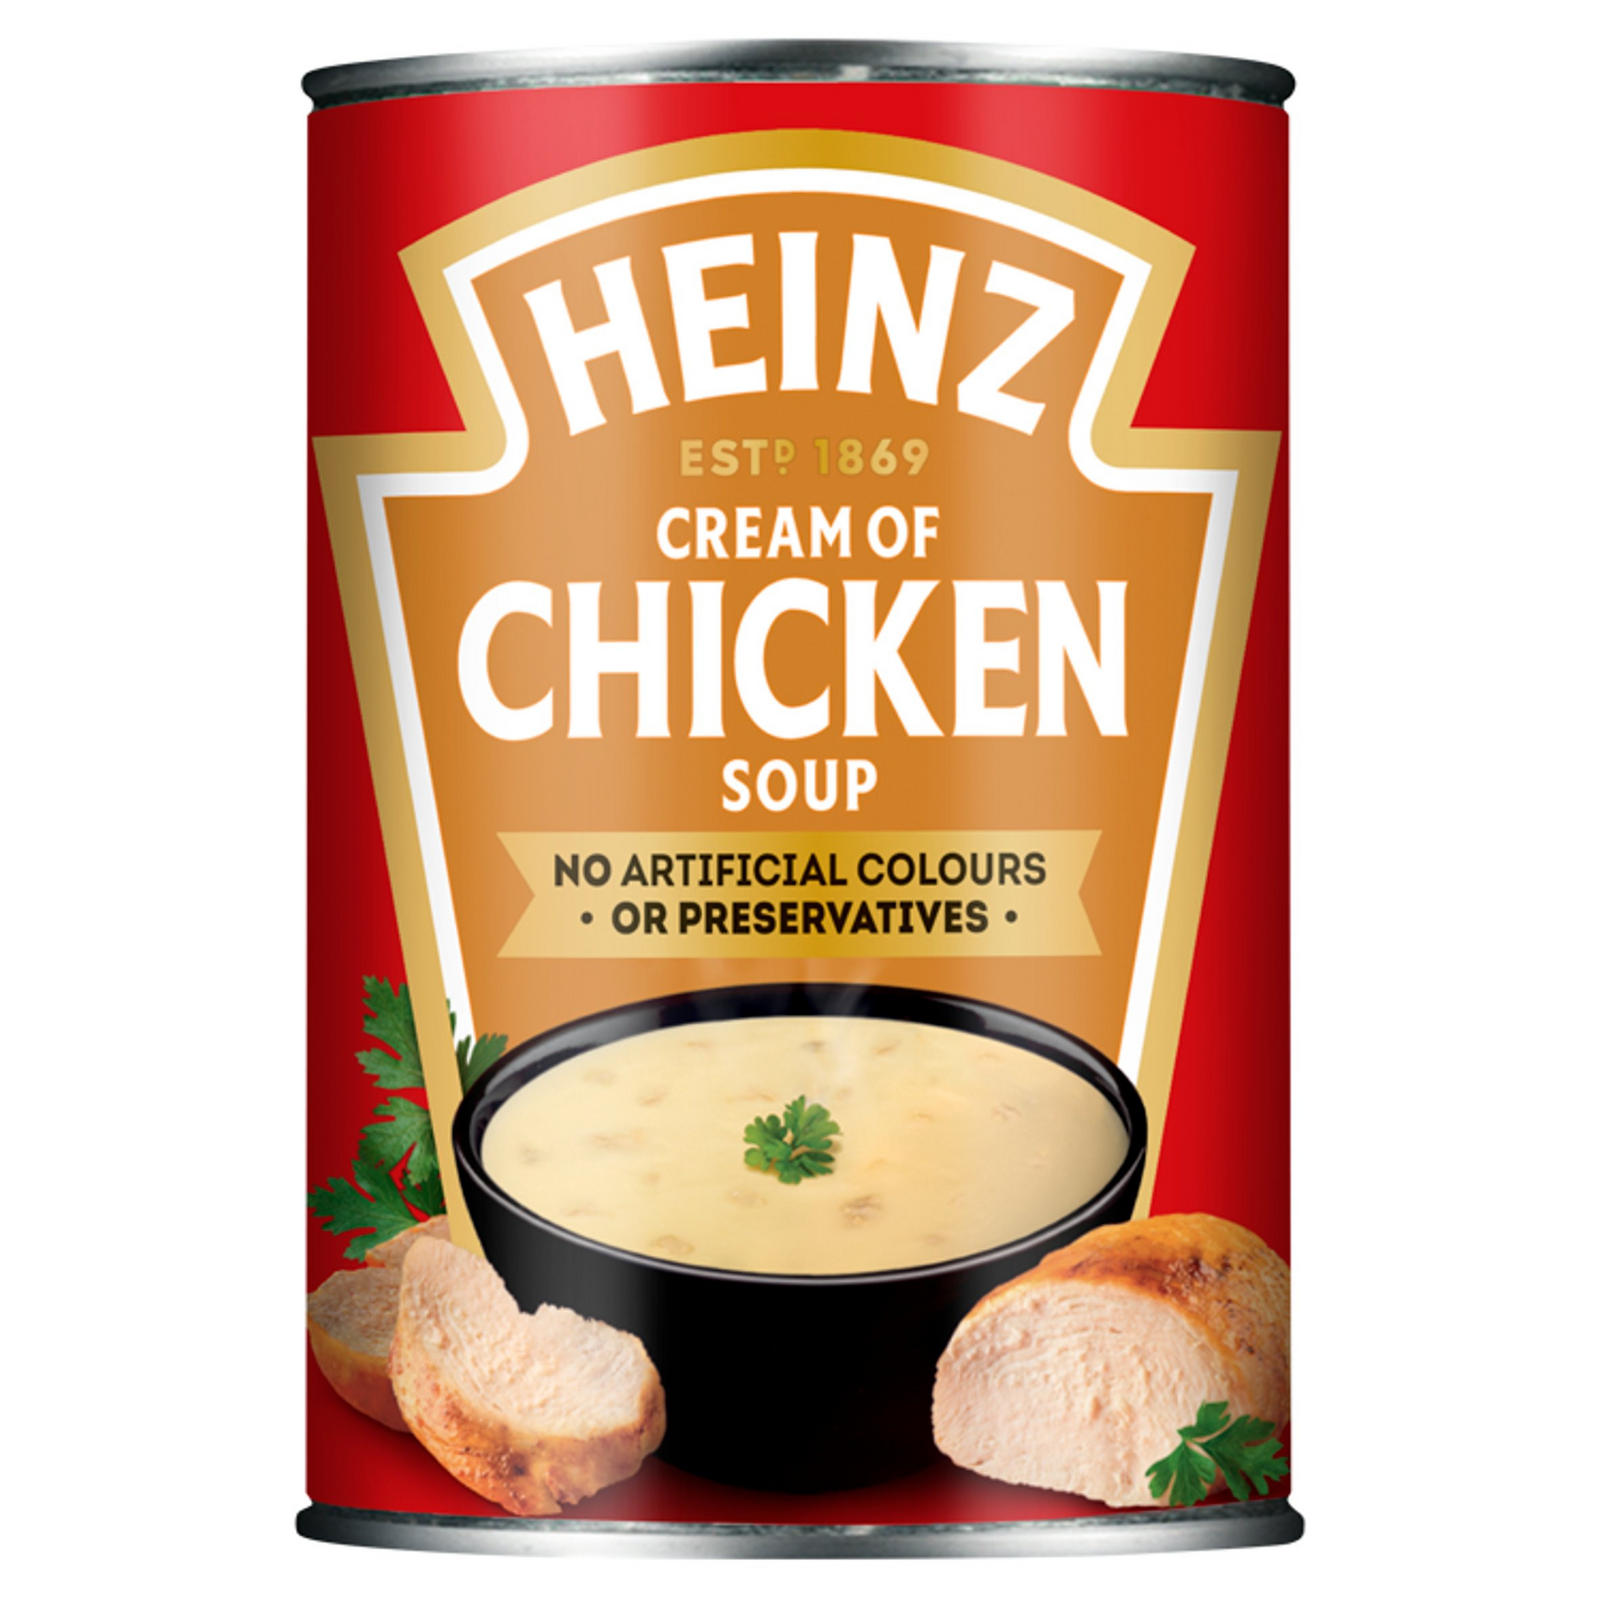 Heinz Cream Of Chicken Soup 400g Tinned Soup Iceland Foods